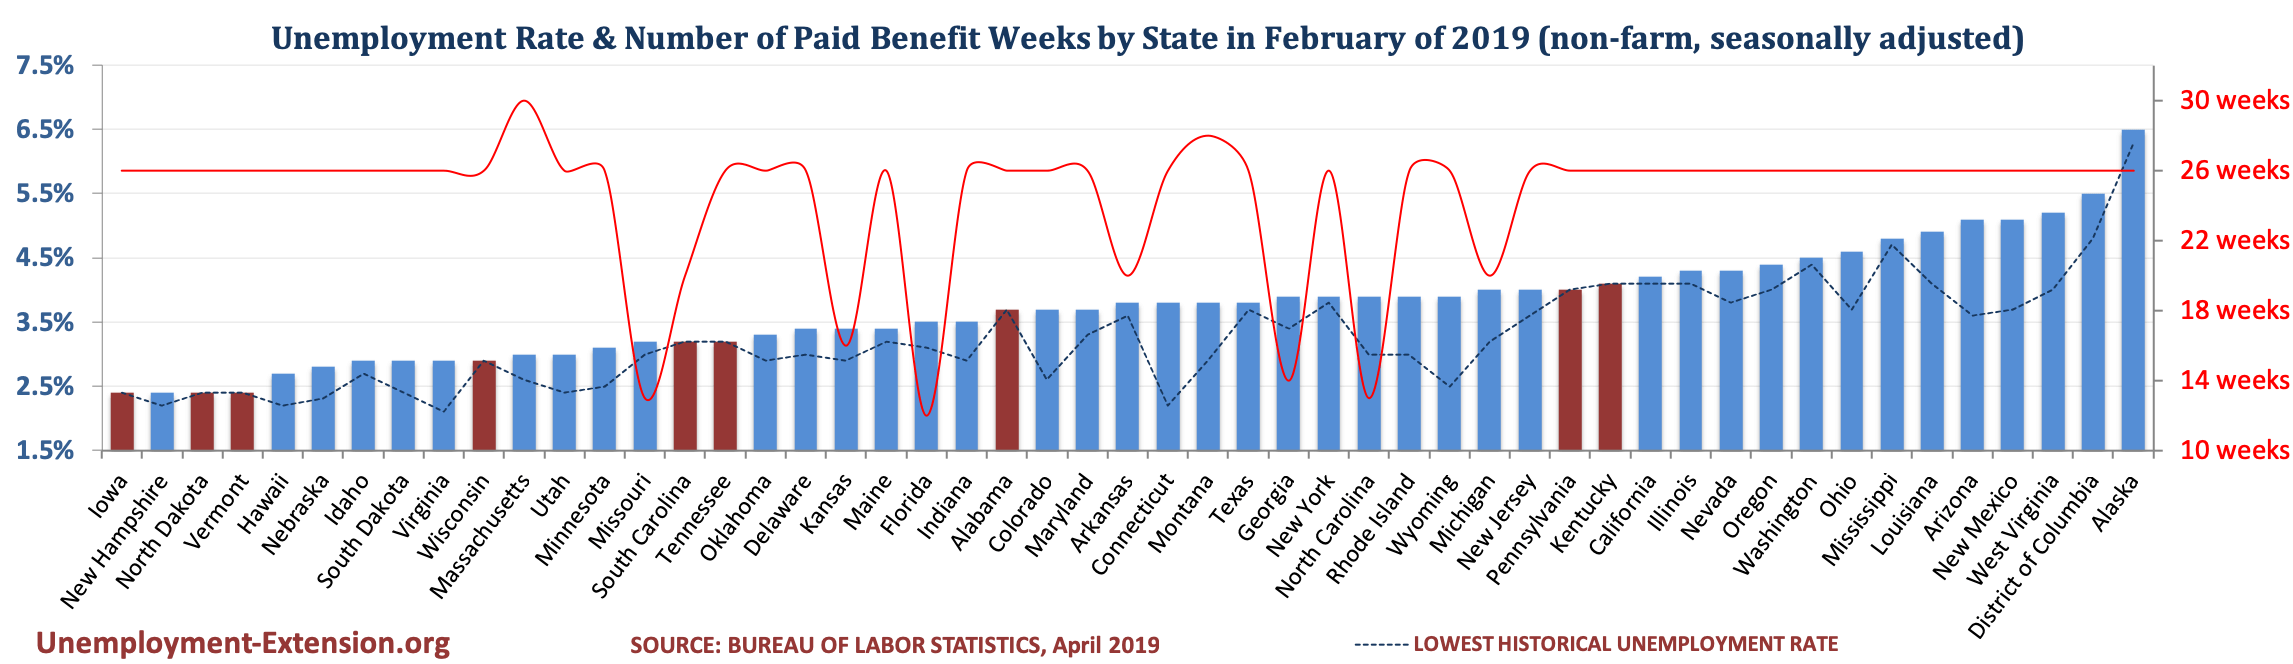 Unemployment Rate and Number of Paid Unemployment Benefit weeks by State (non-farm, seasonally adjusted) in February of 2019